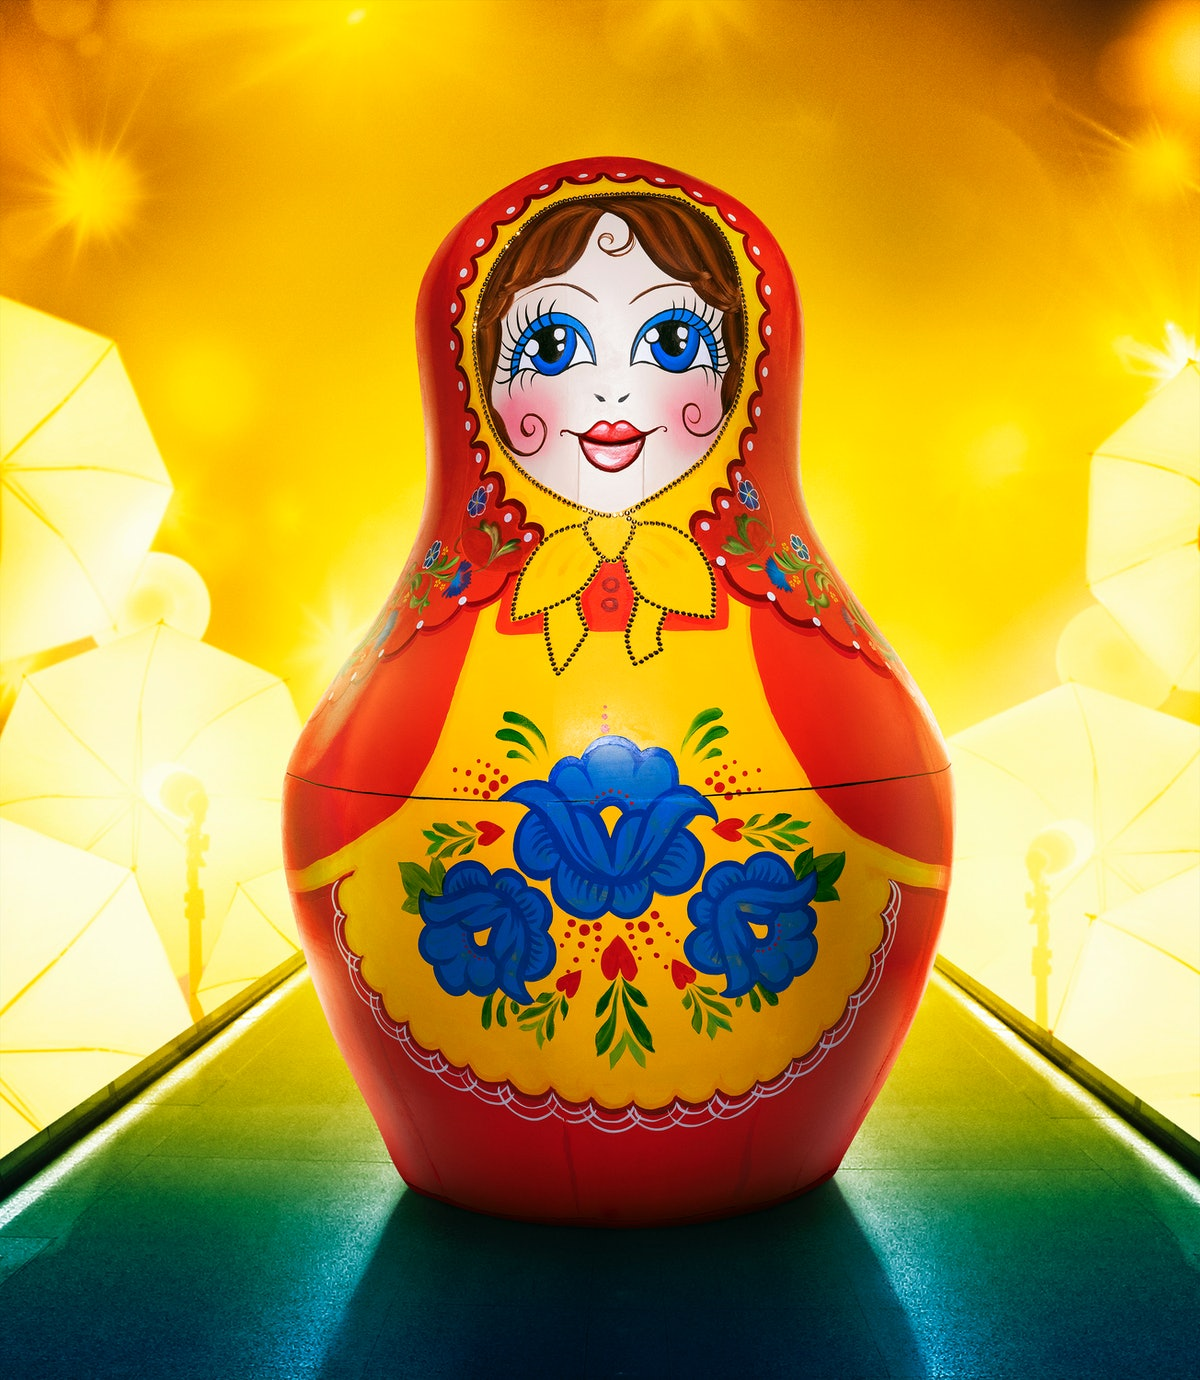 One of the Russian Dolls on The Masked Singer